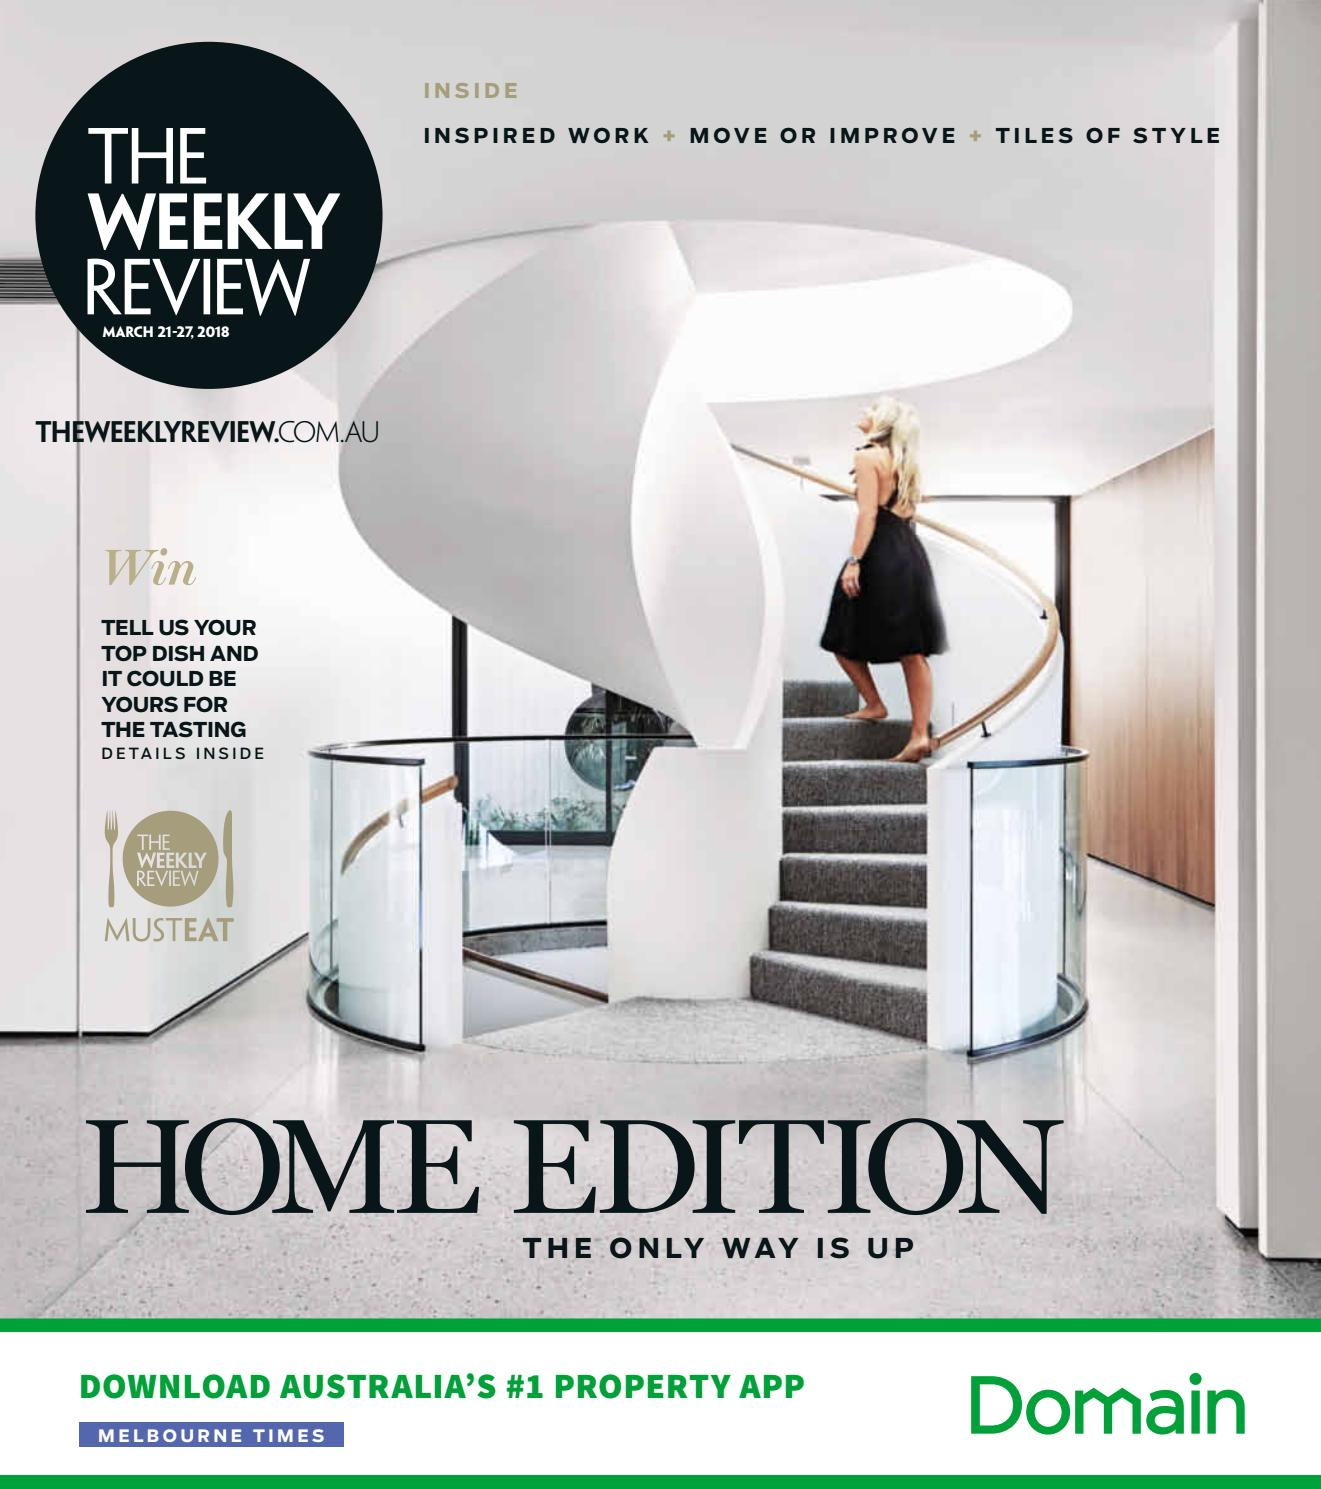 The weekly review melbourne times by the weekly review issuu fandeluxe Choice Image